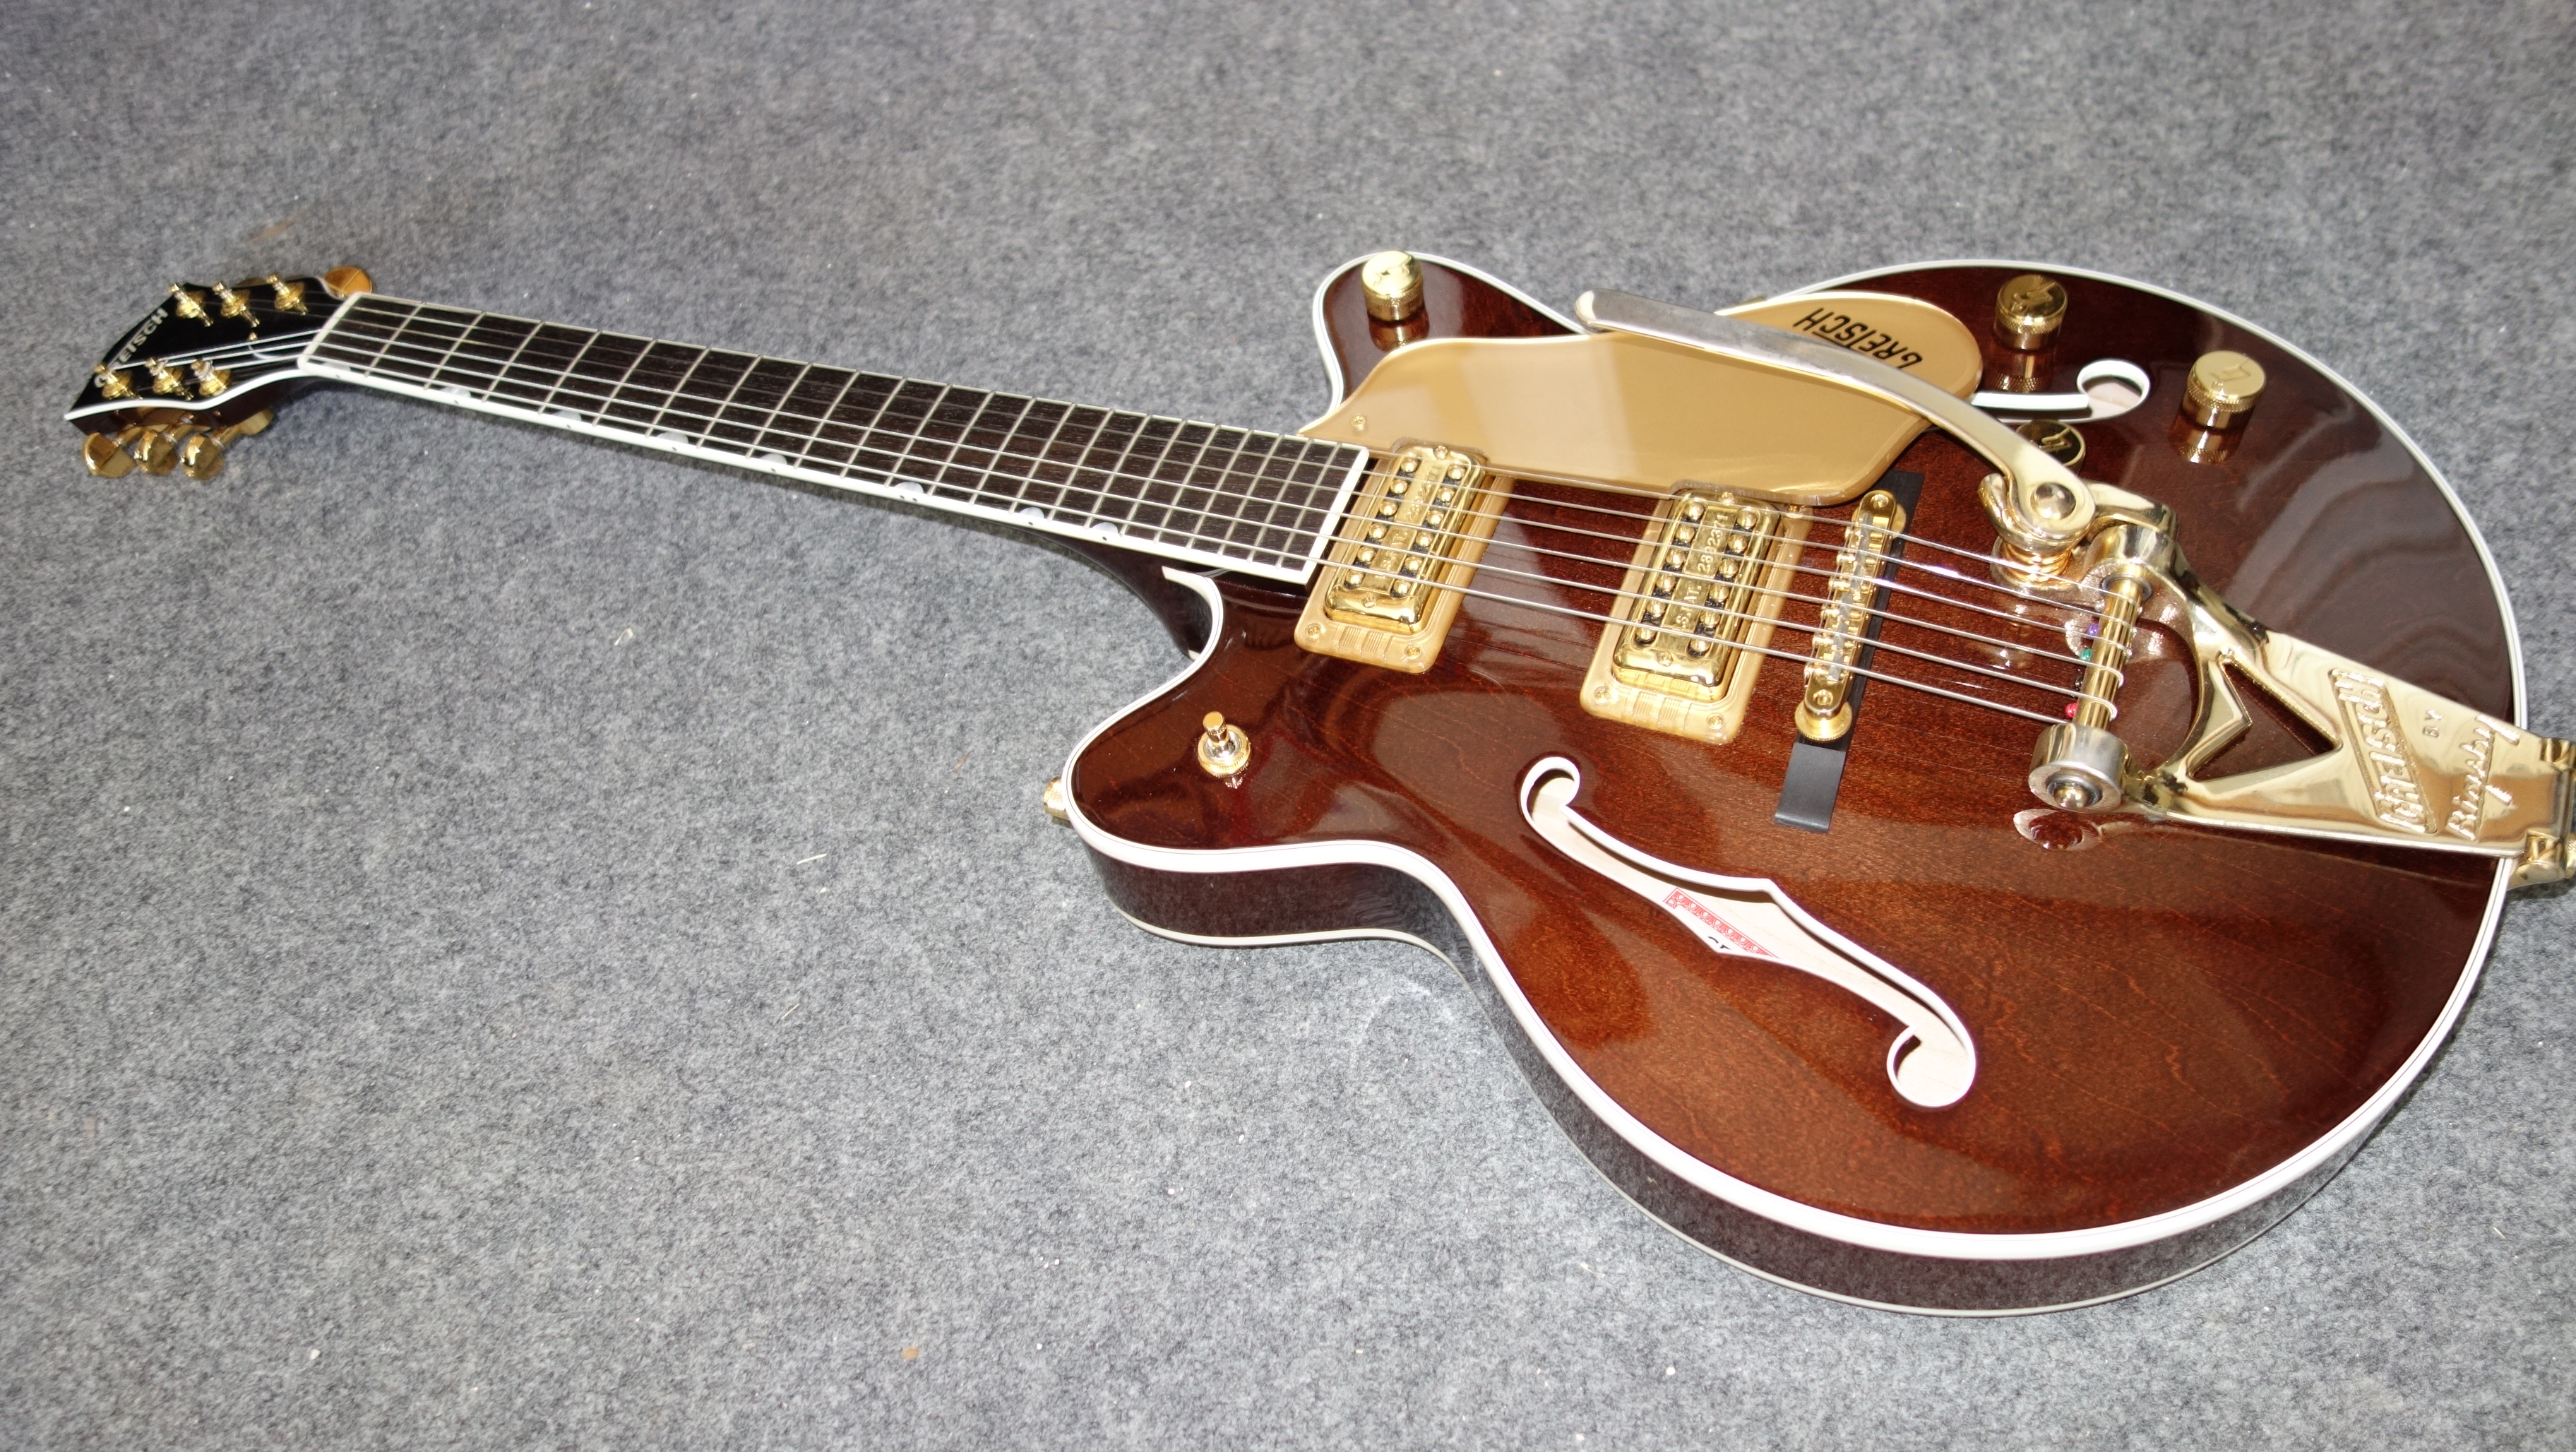 Gretsch G6122JR Country Classic Jr image (#557735) - Audiofanzine